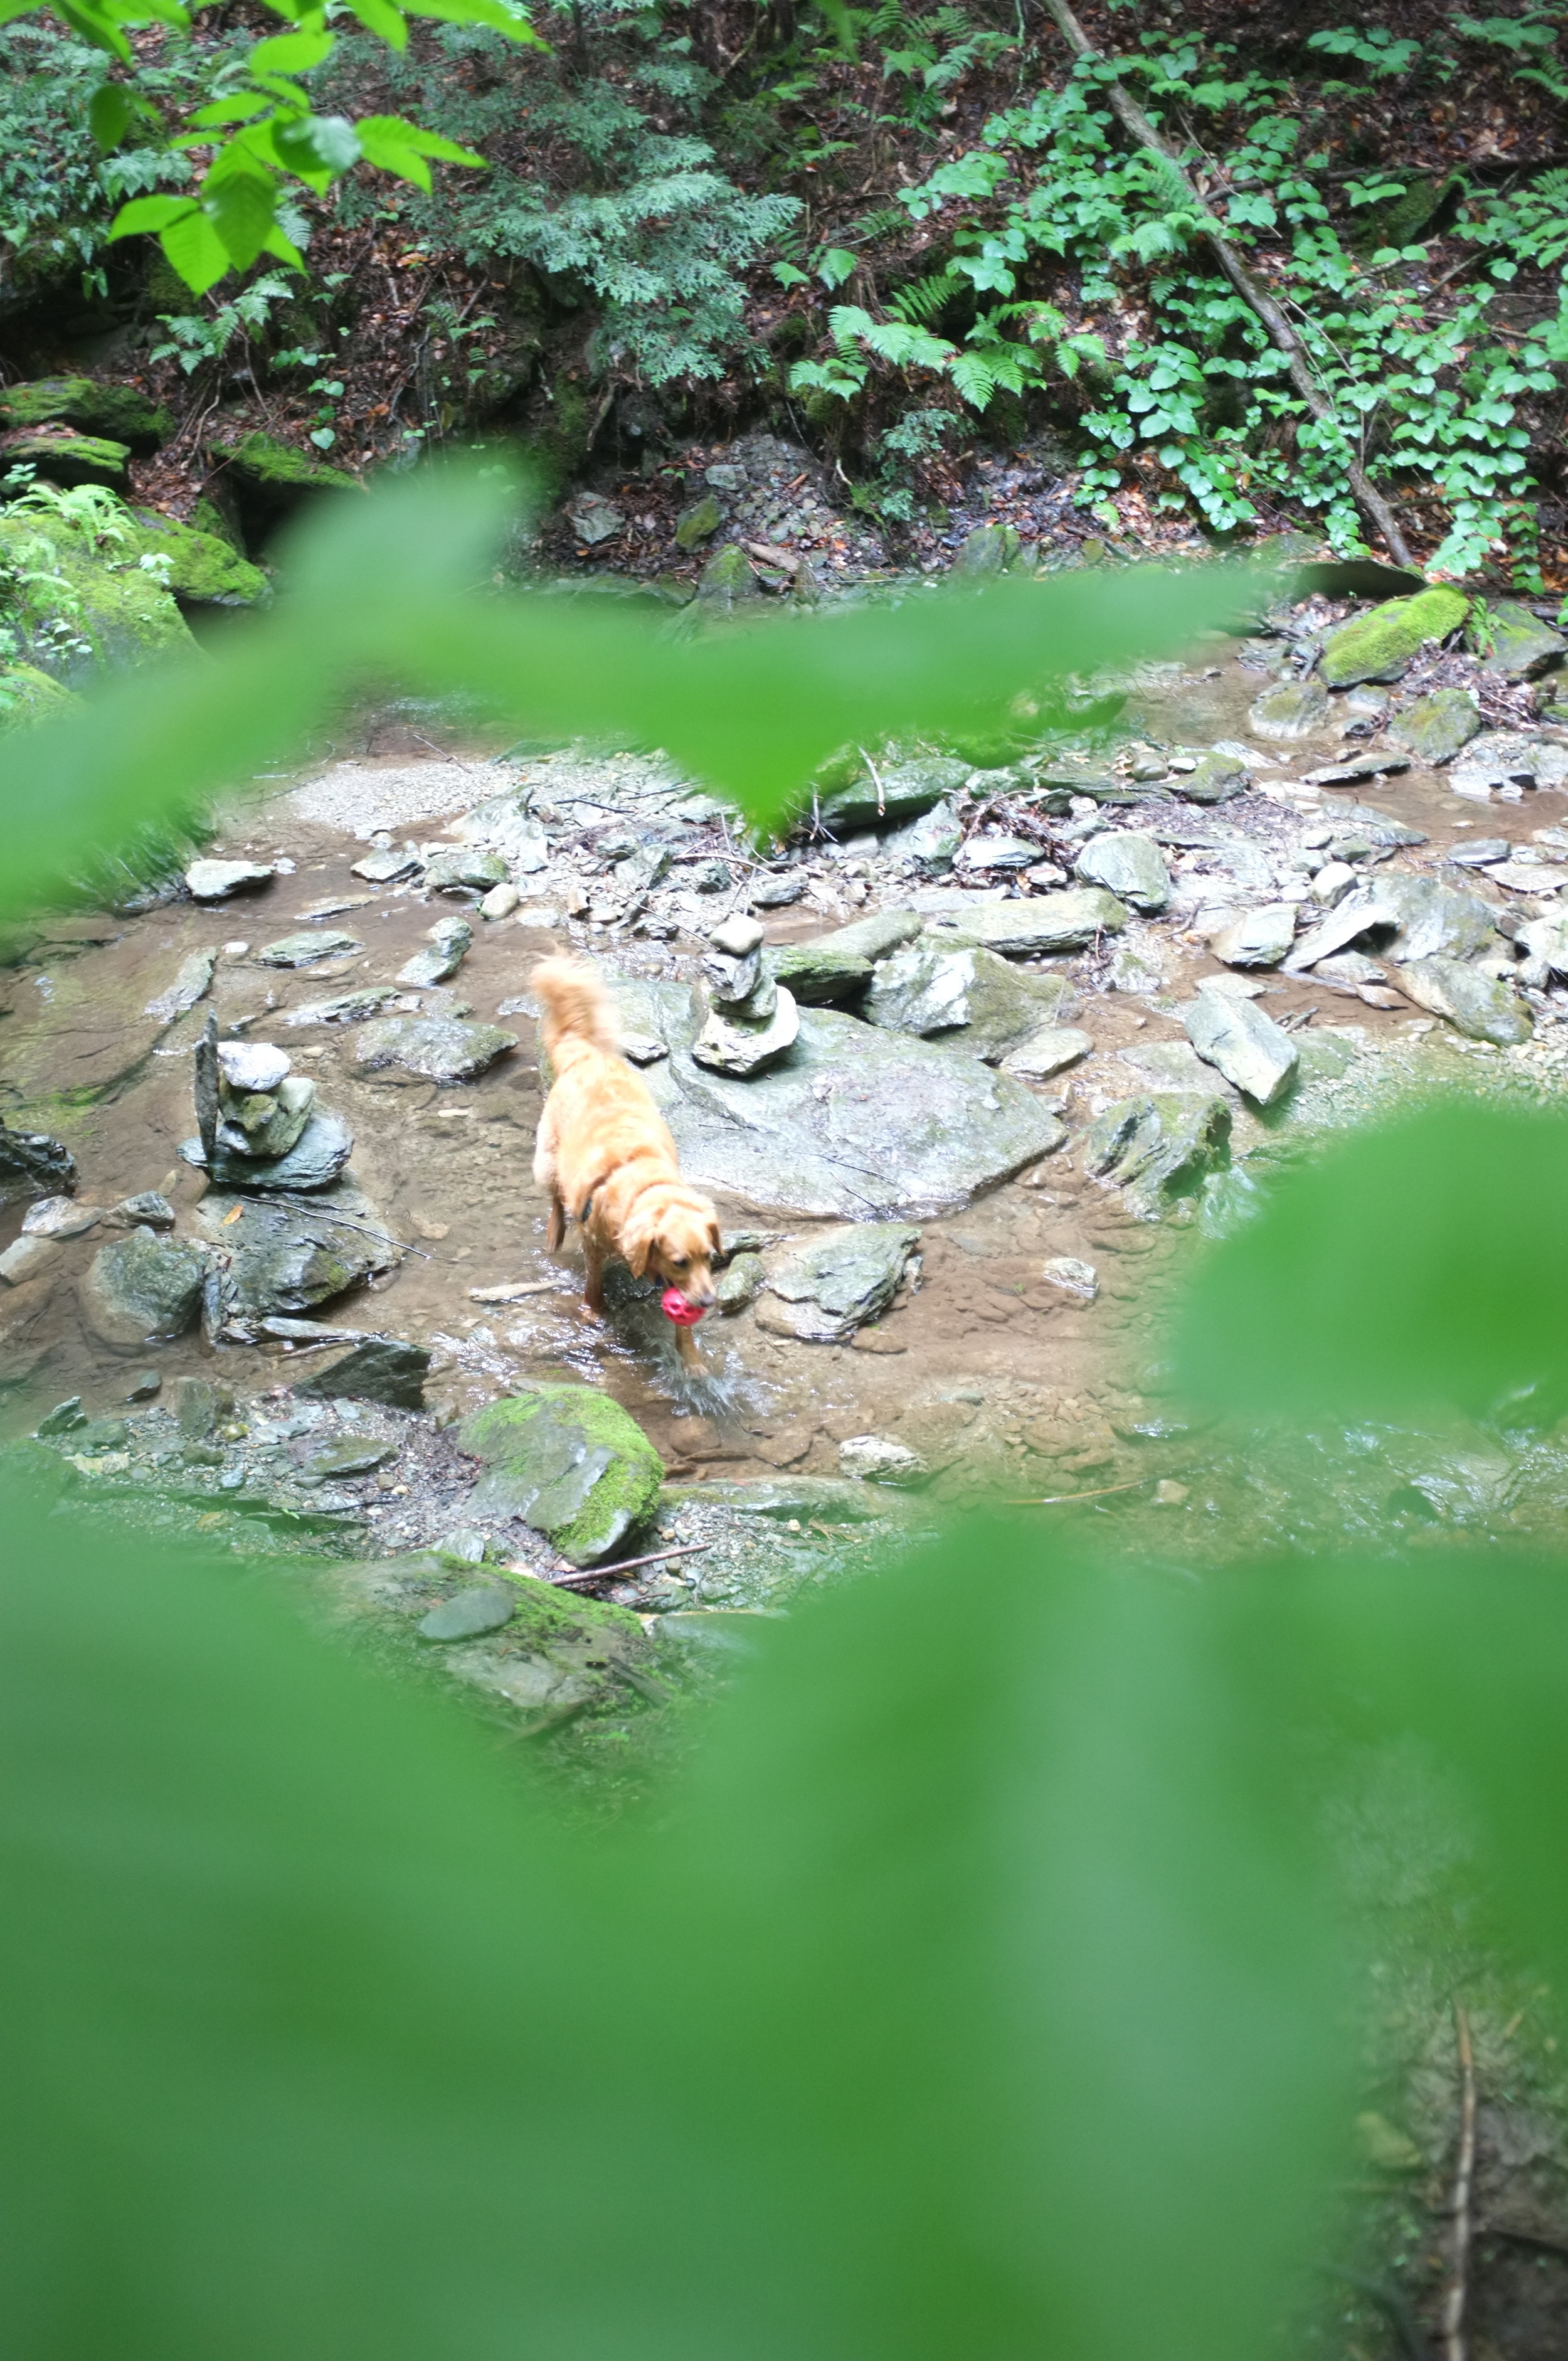 Elsie cooling off in the stream at Steven's Glen.